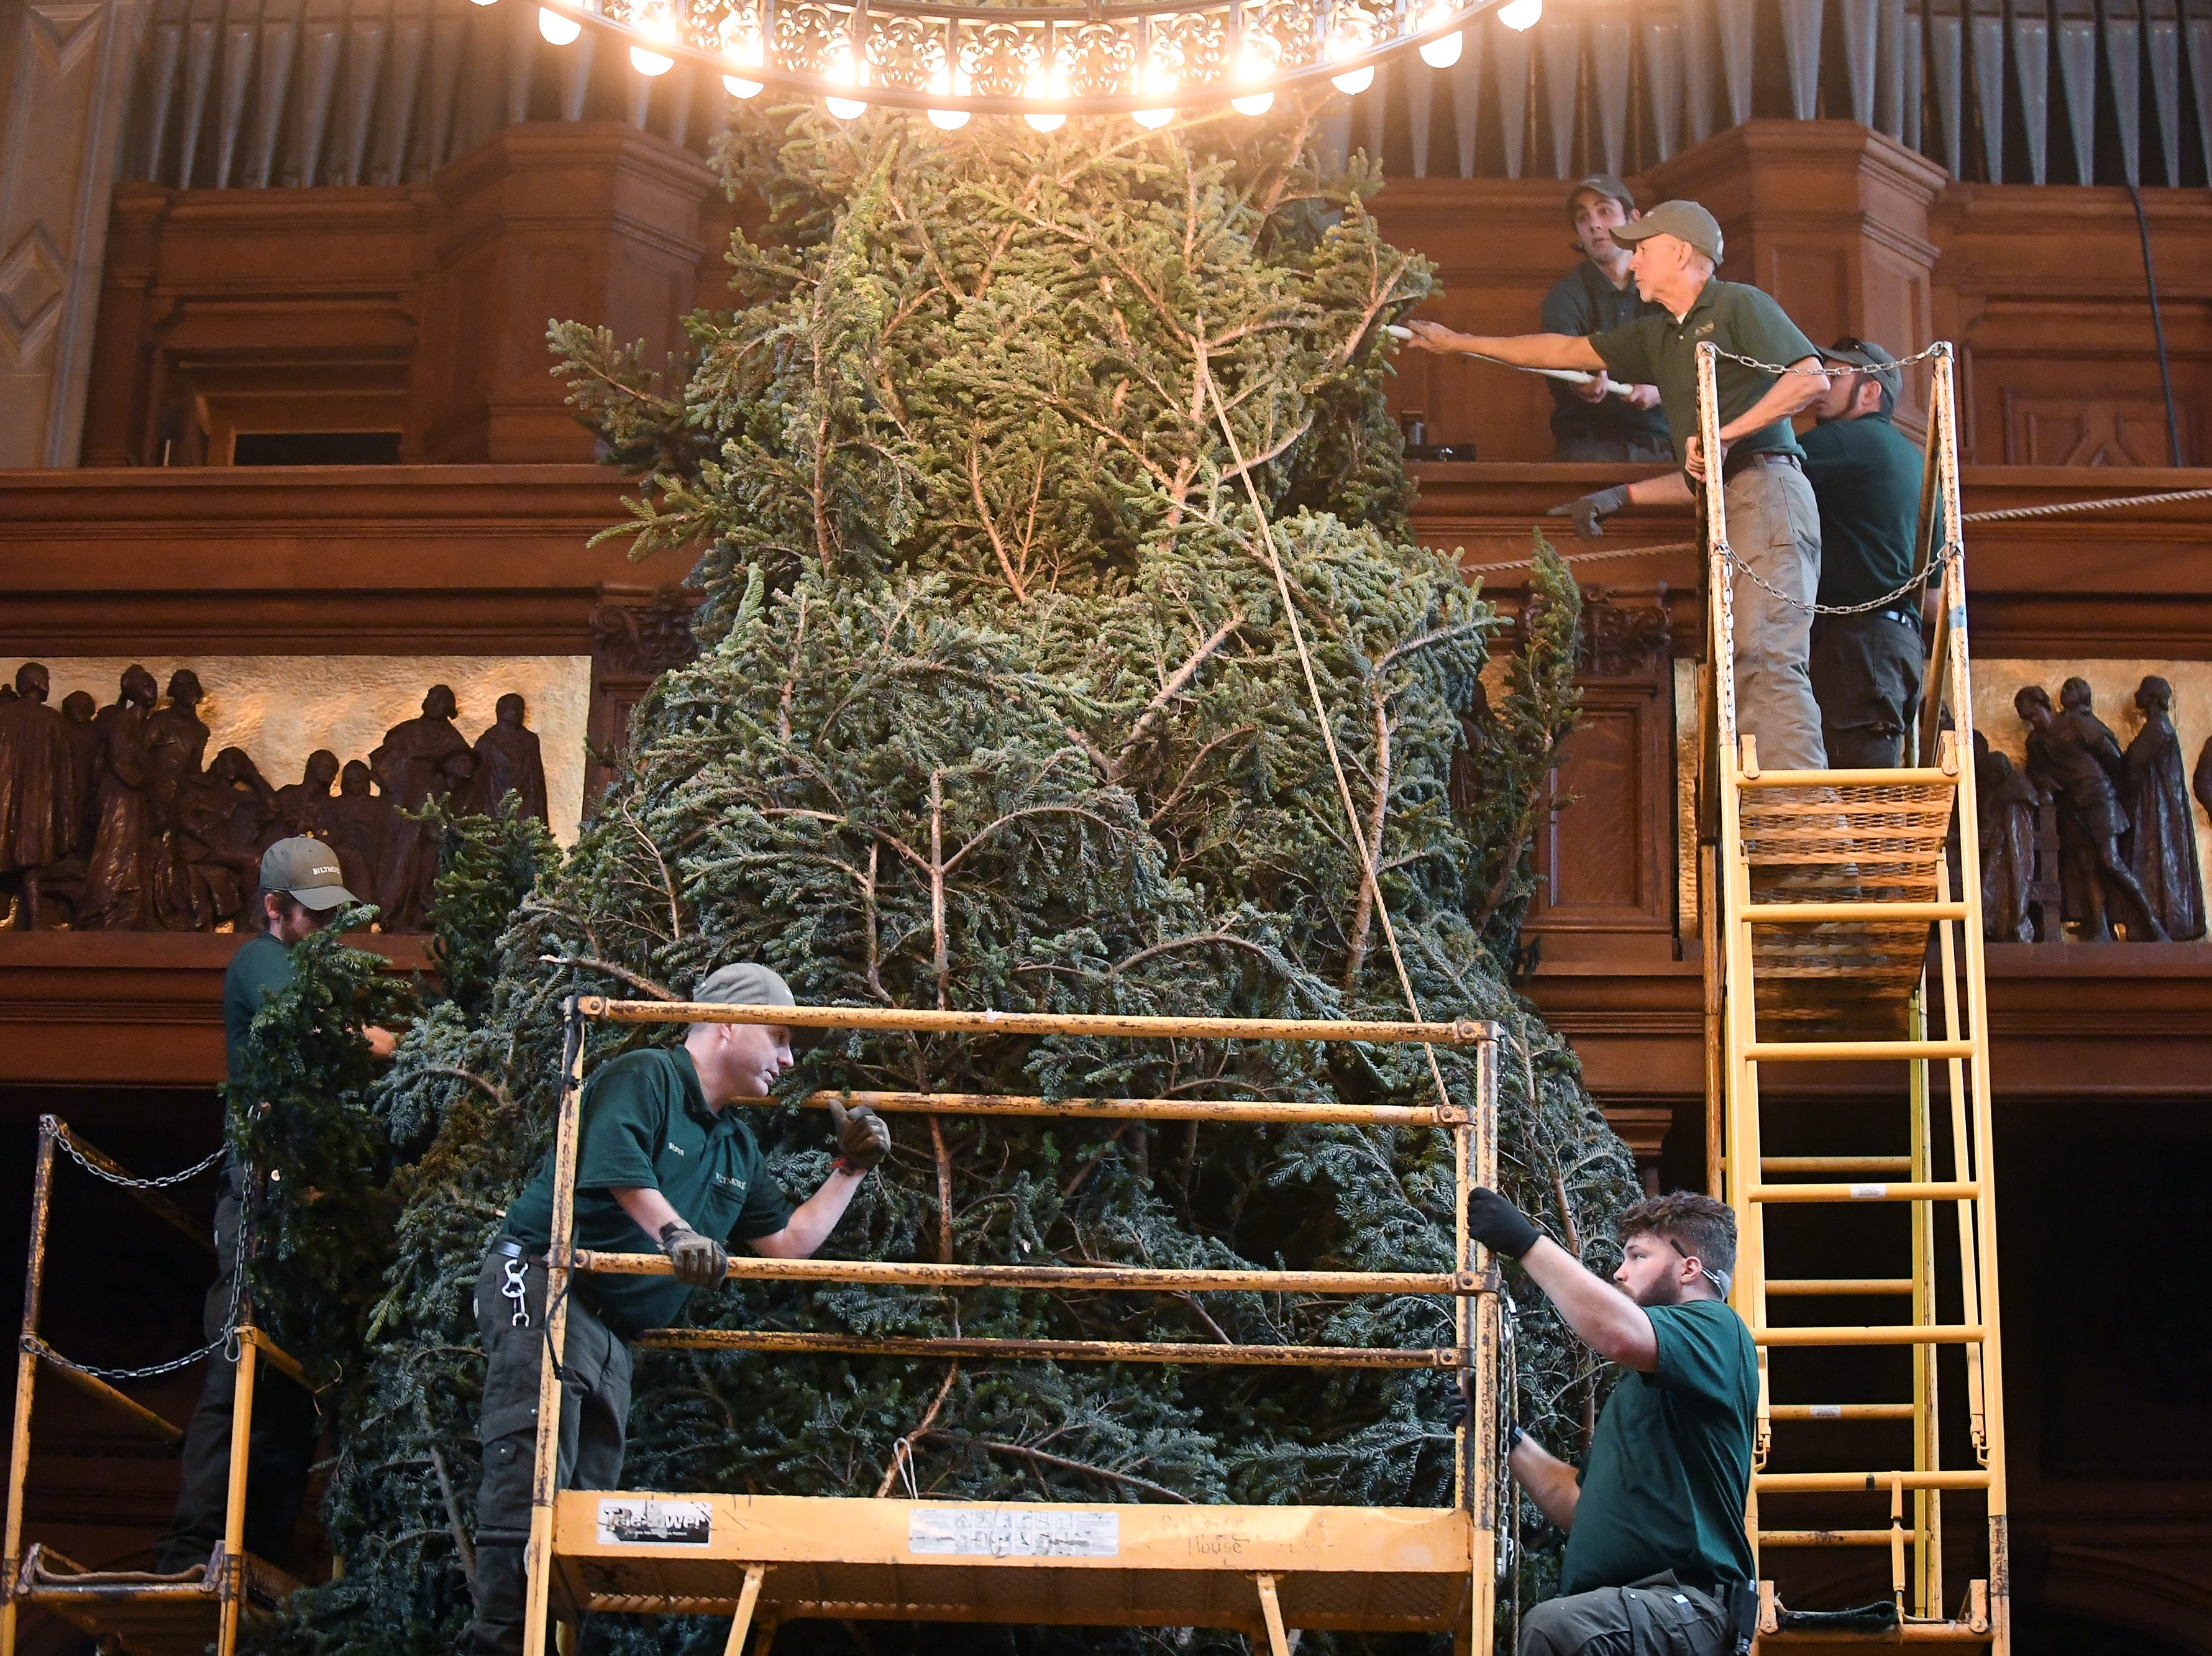 A team of about 50 employees from various departments raised the Biltmore's Christmas tree, a Douglas-fir, in the banquet hall Nov. 1, 2018.